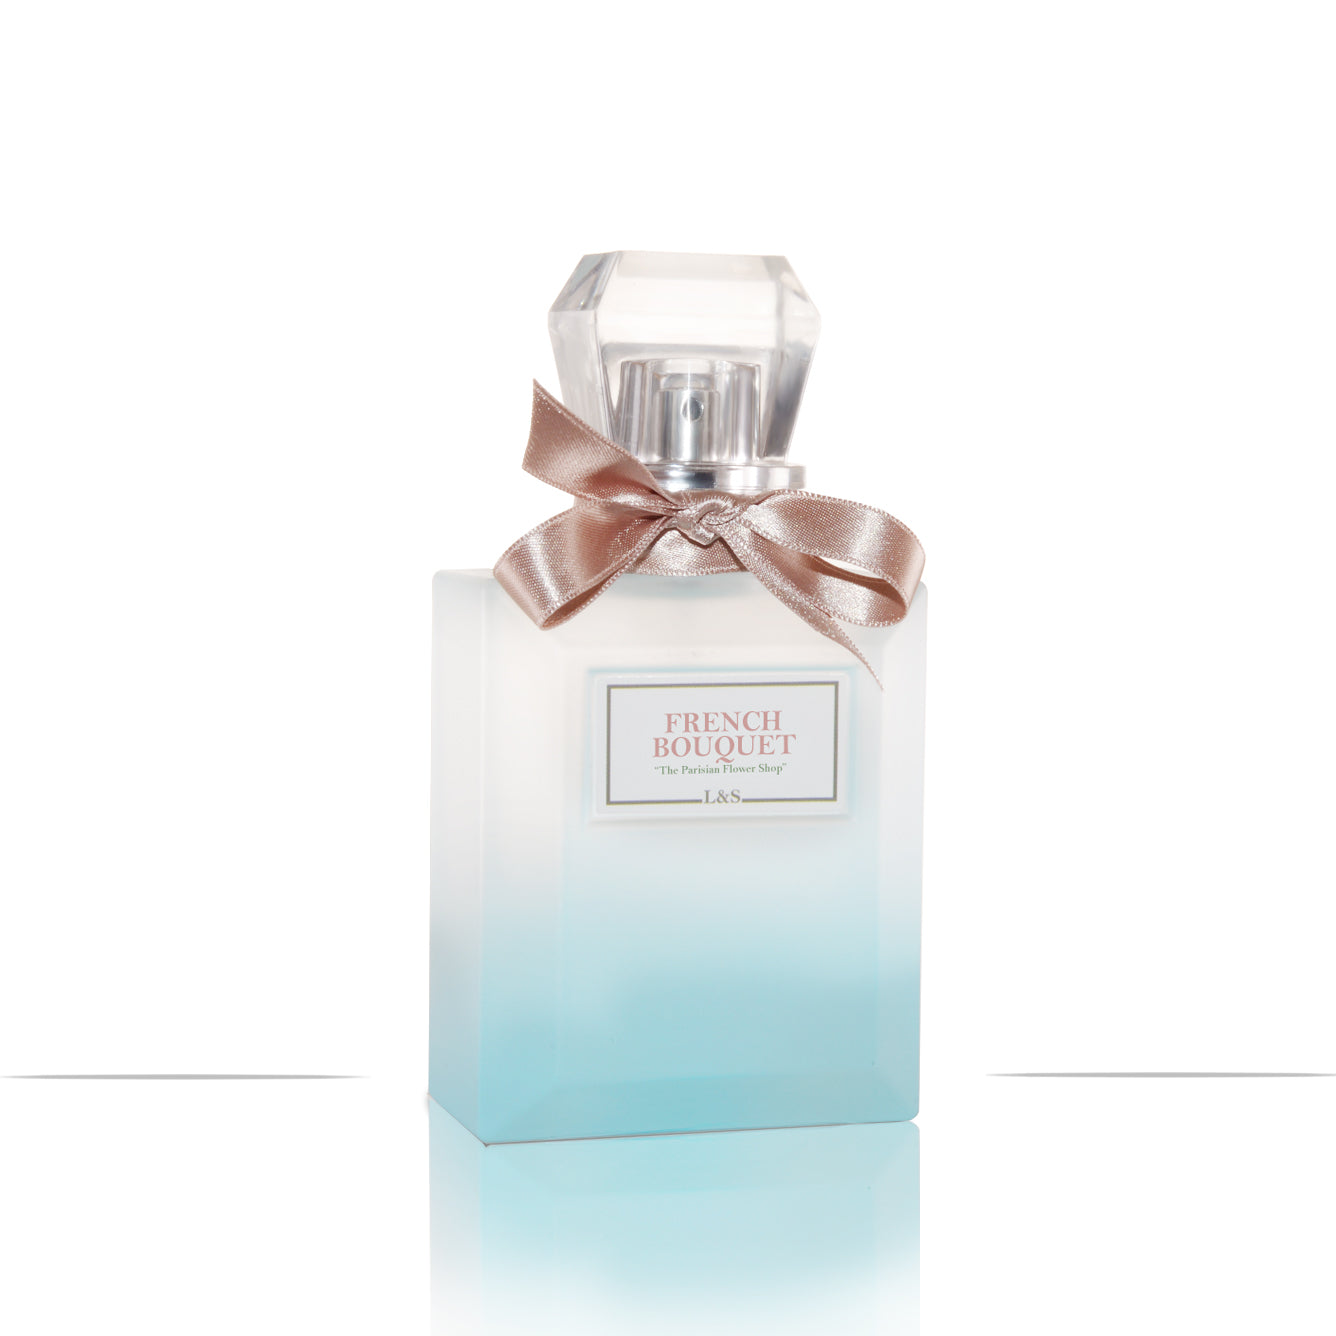 New french bouquet aqua perfume in blue lisa sara french bouquet aqua perfume in blue izmirmasajfo